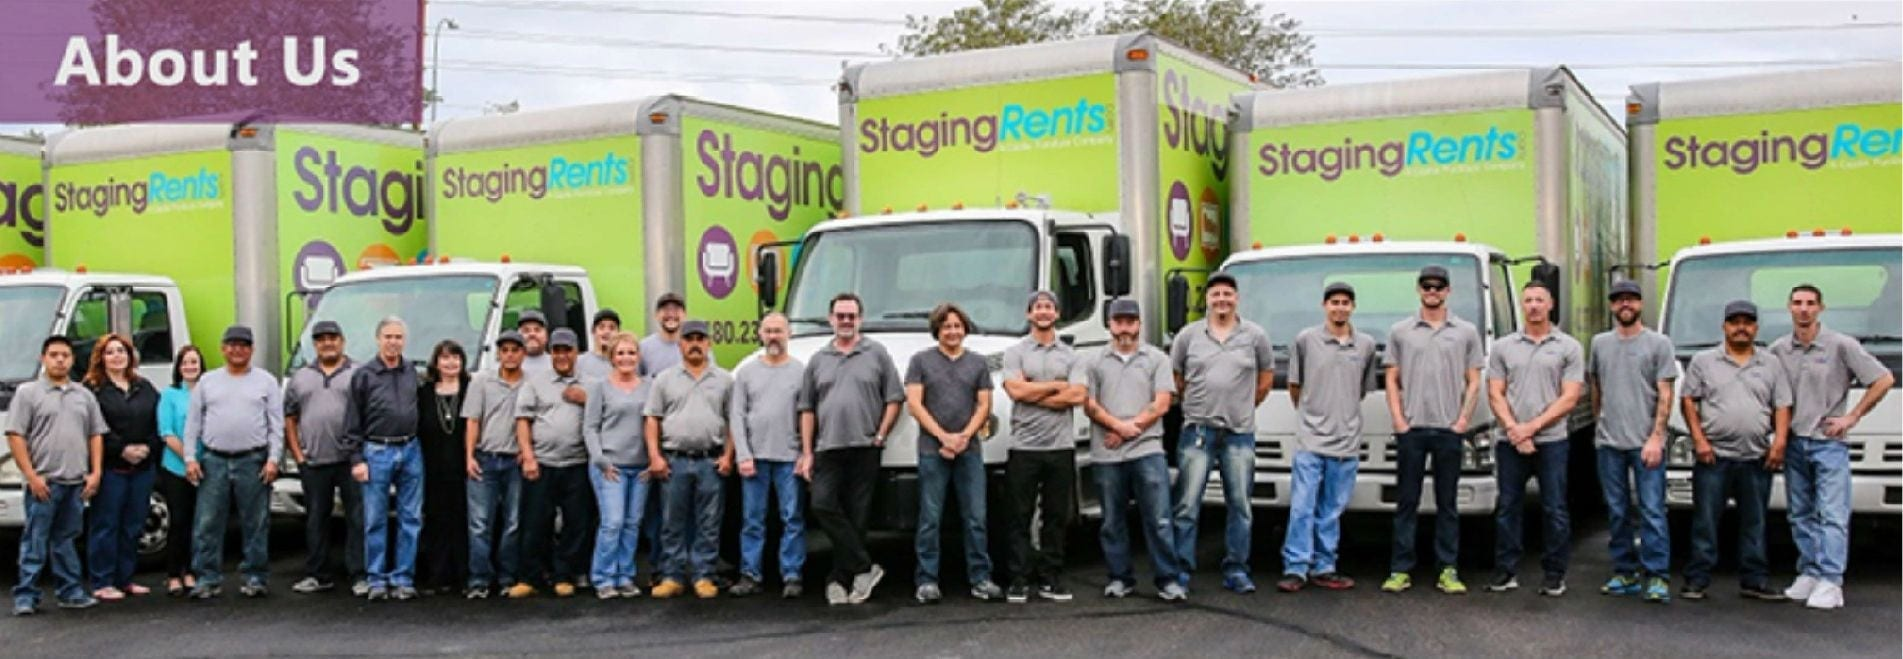 Staging Rents Team